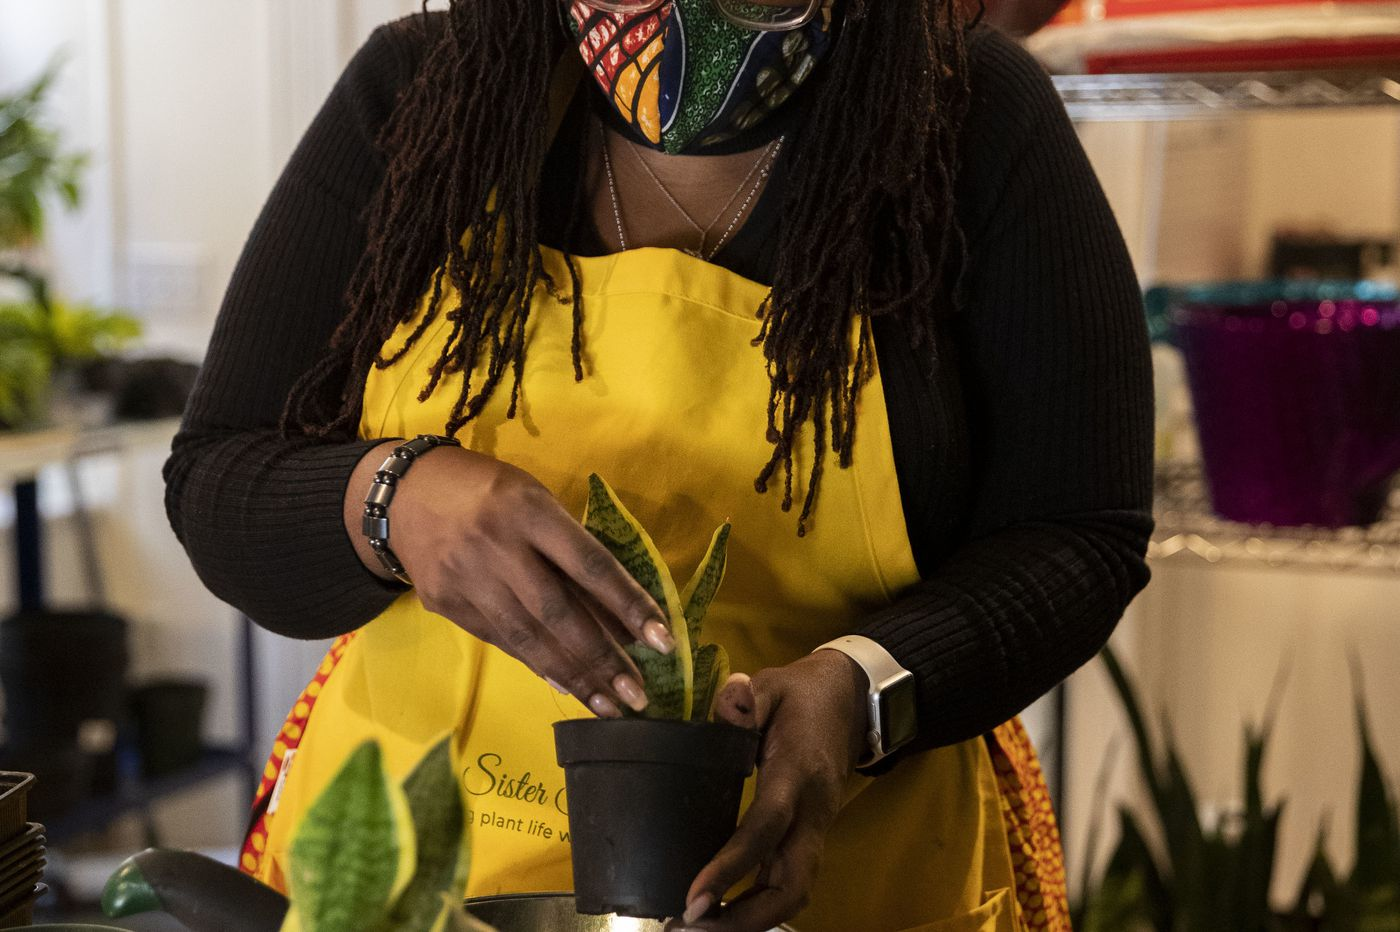 A new plant shop sprouts in Chestnut Hill, and offers just the kind of healing we need right now | Helen Ubiñas